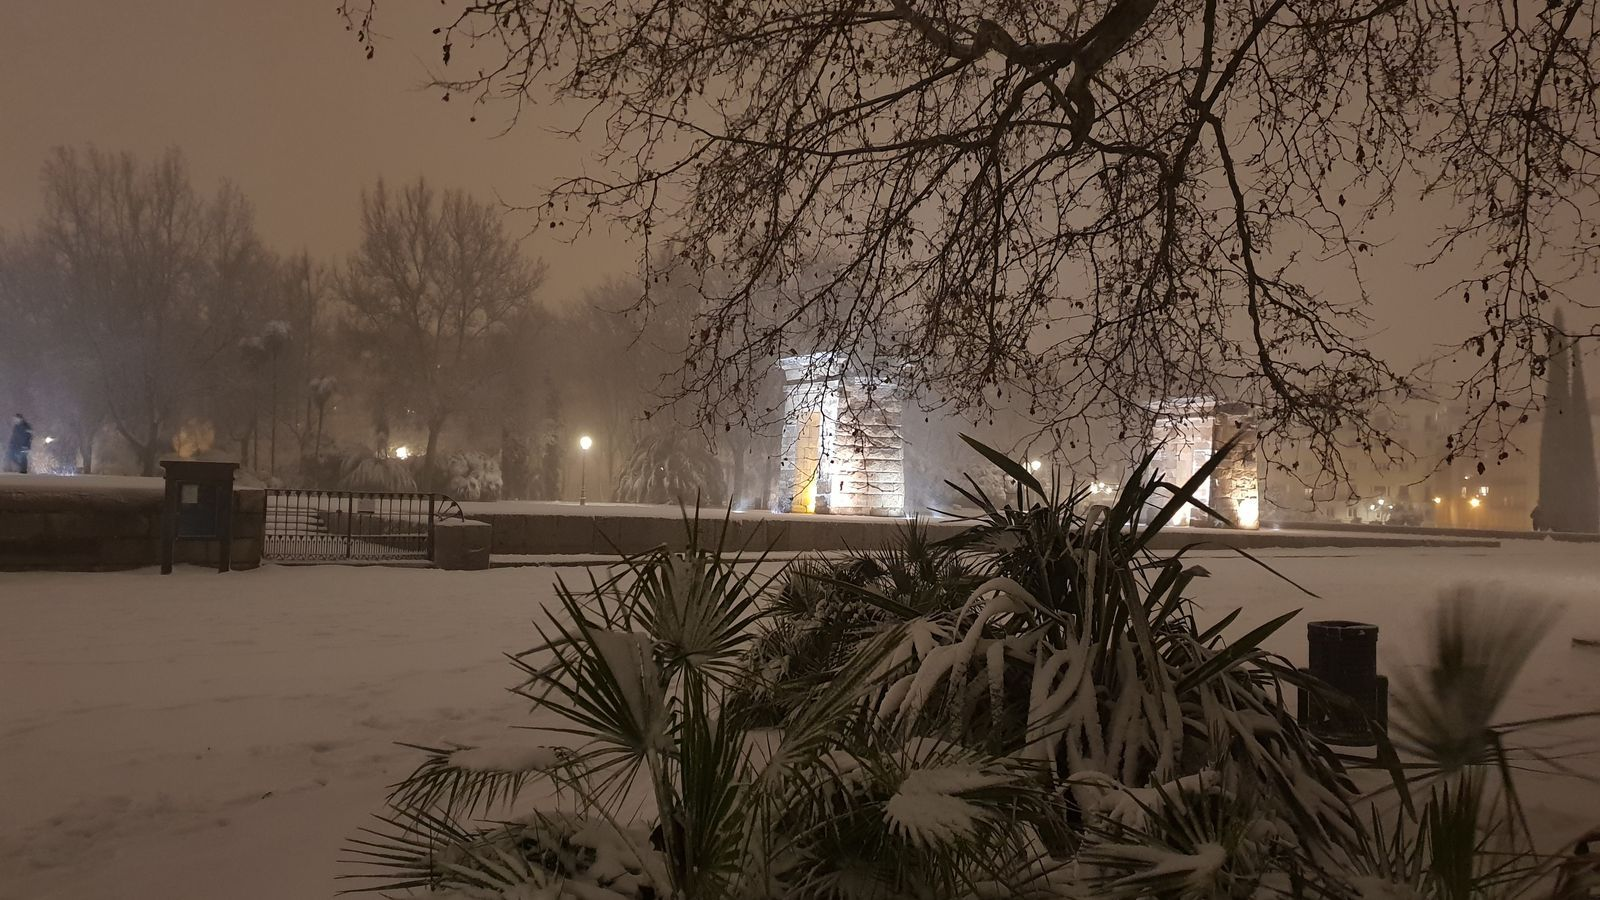 El temple de Debod de Madrid, nevat